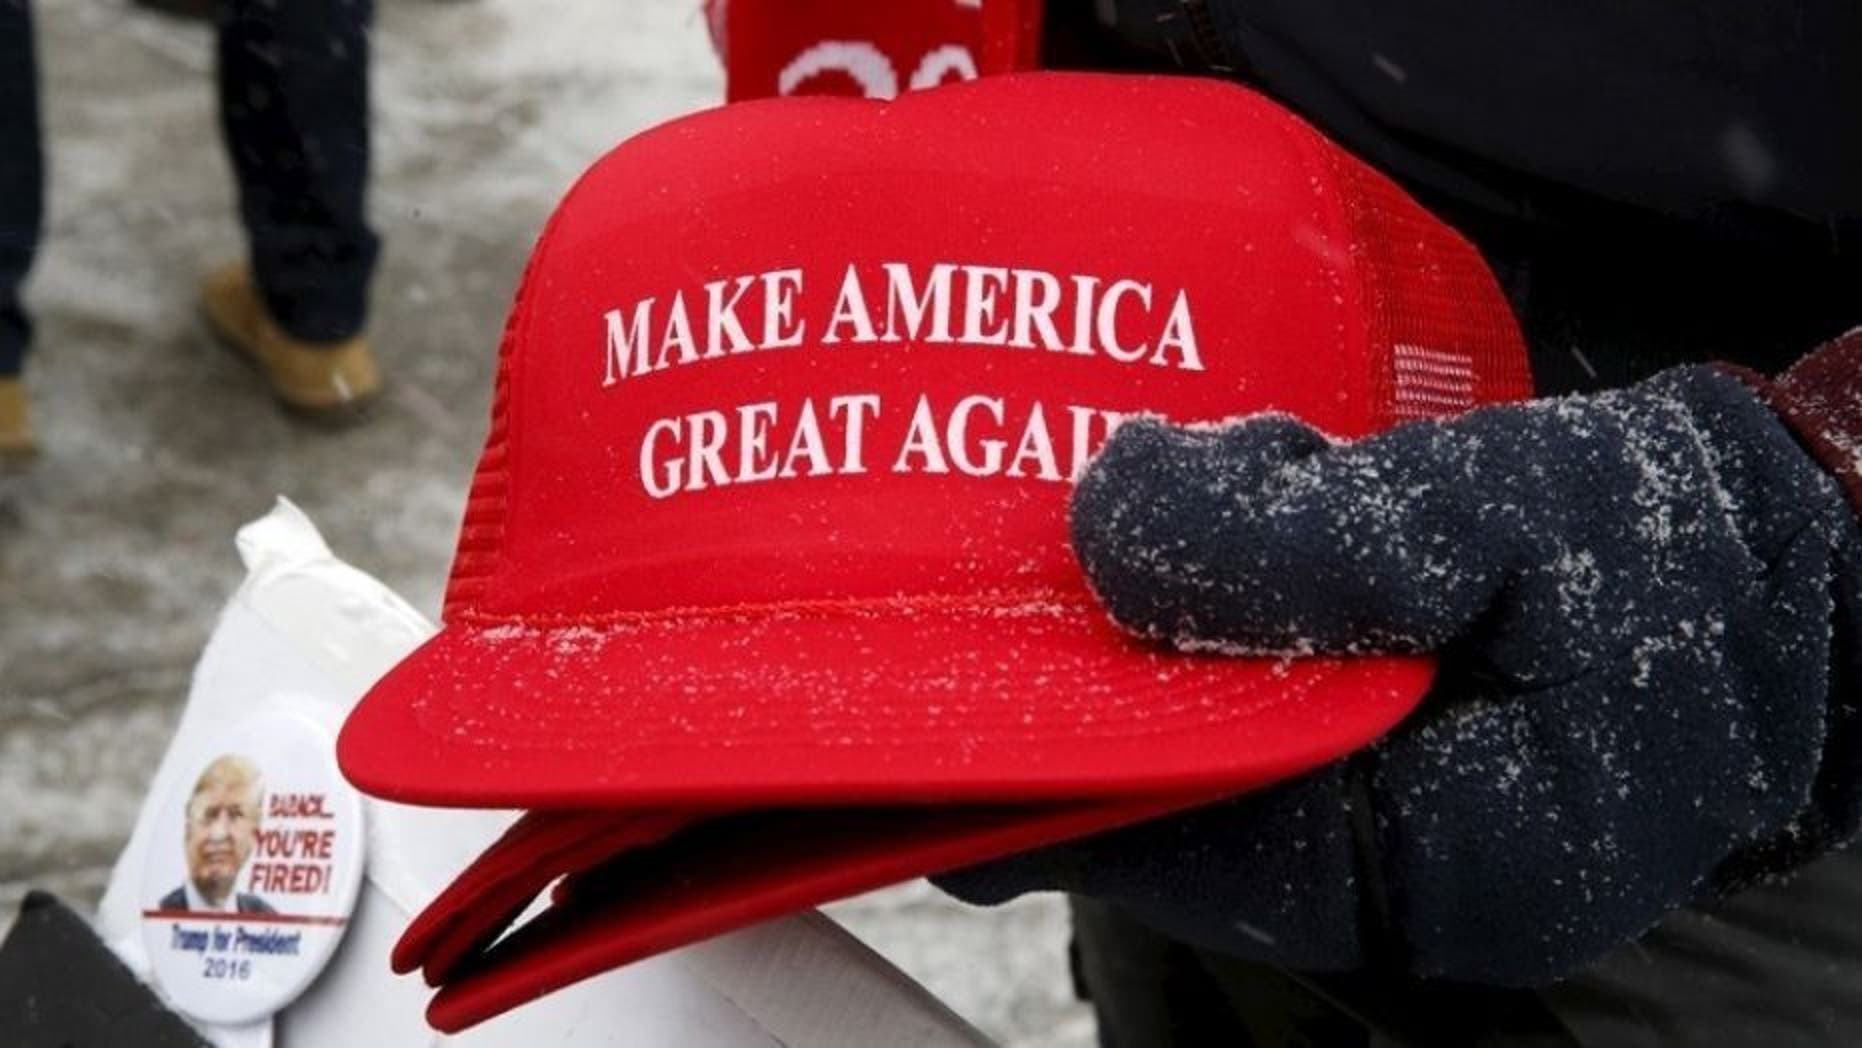 """The Replay Lincoln Park bar in Chicago apologized Tuesday afternoon and said """"everyone is welcome"""" just days after announcing it will no longer accept patrons who wear """"Make America Great Again"""" hats or have face tattoos."""